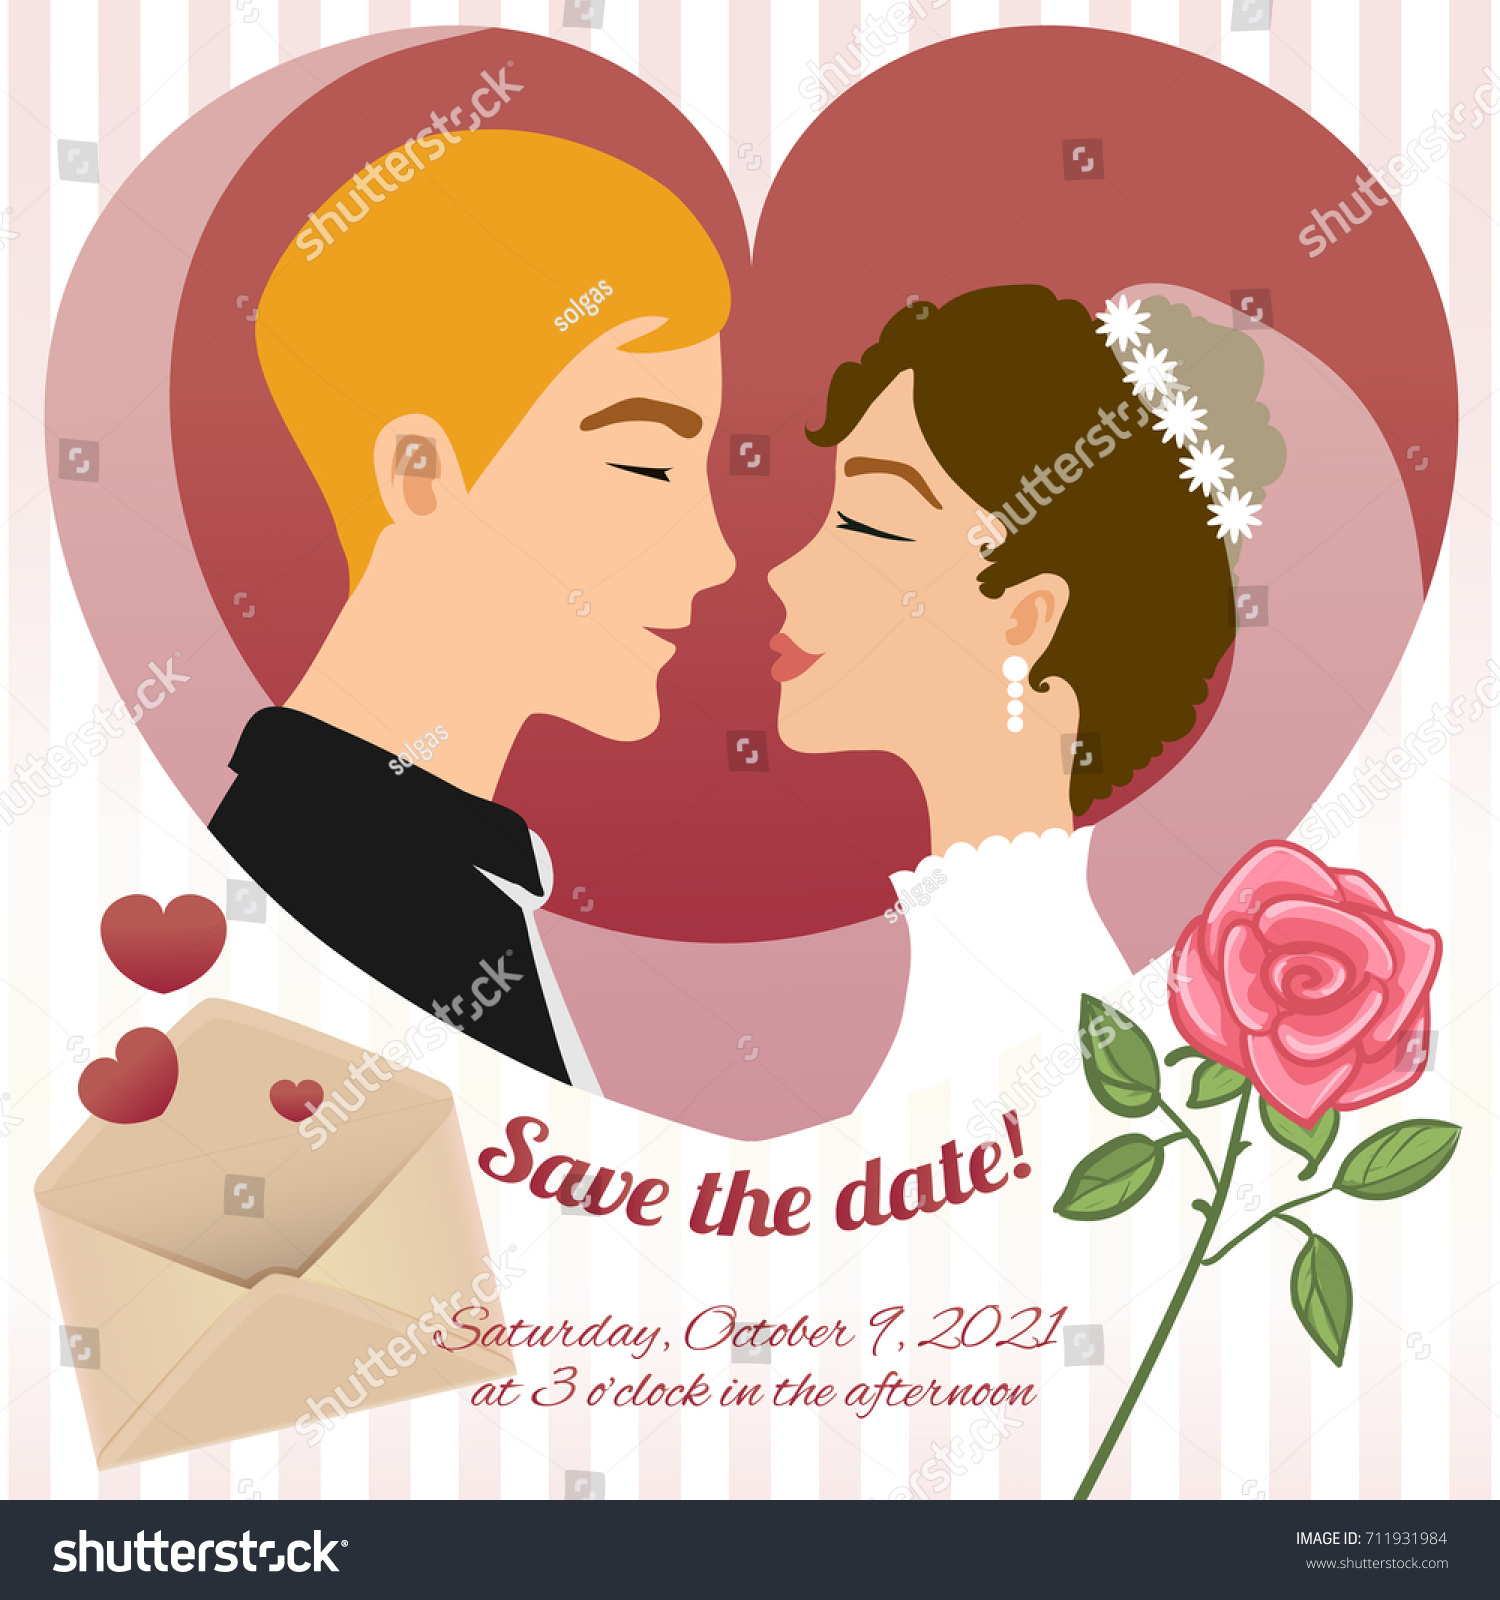 Invitation Card Wedding Young Couple Rose Stock Vector (Royalty Free ...